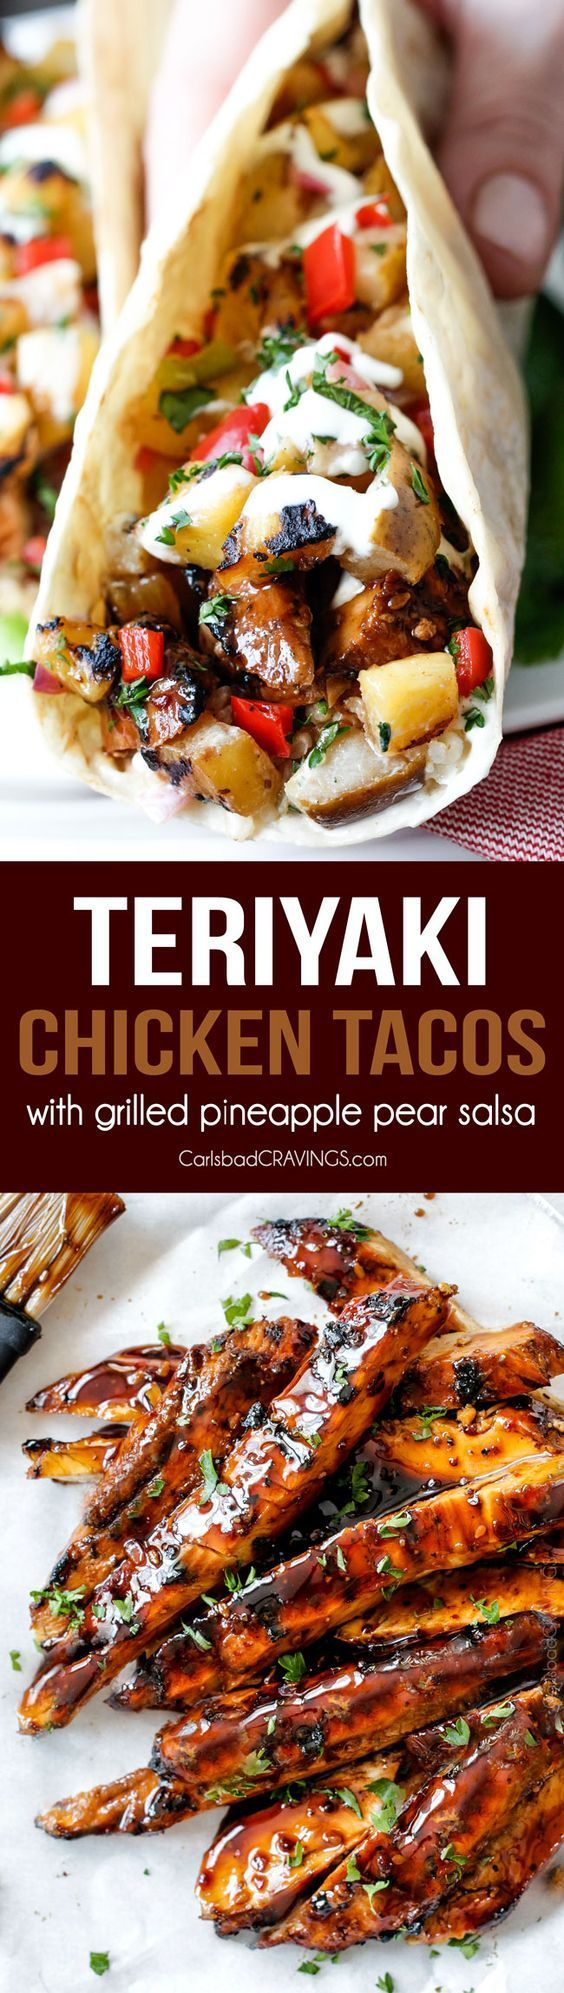 Teriyaki Chicken Tacos smothered with the BEST easy teriyaki sauce and piled with Grilled Pineapple Pear Salsa will be your new favorite taco! Company worthy bu